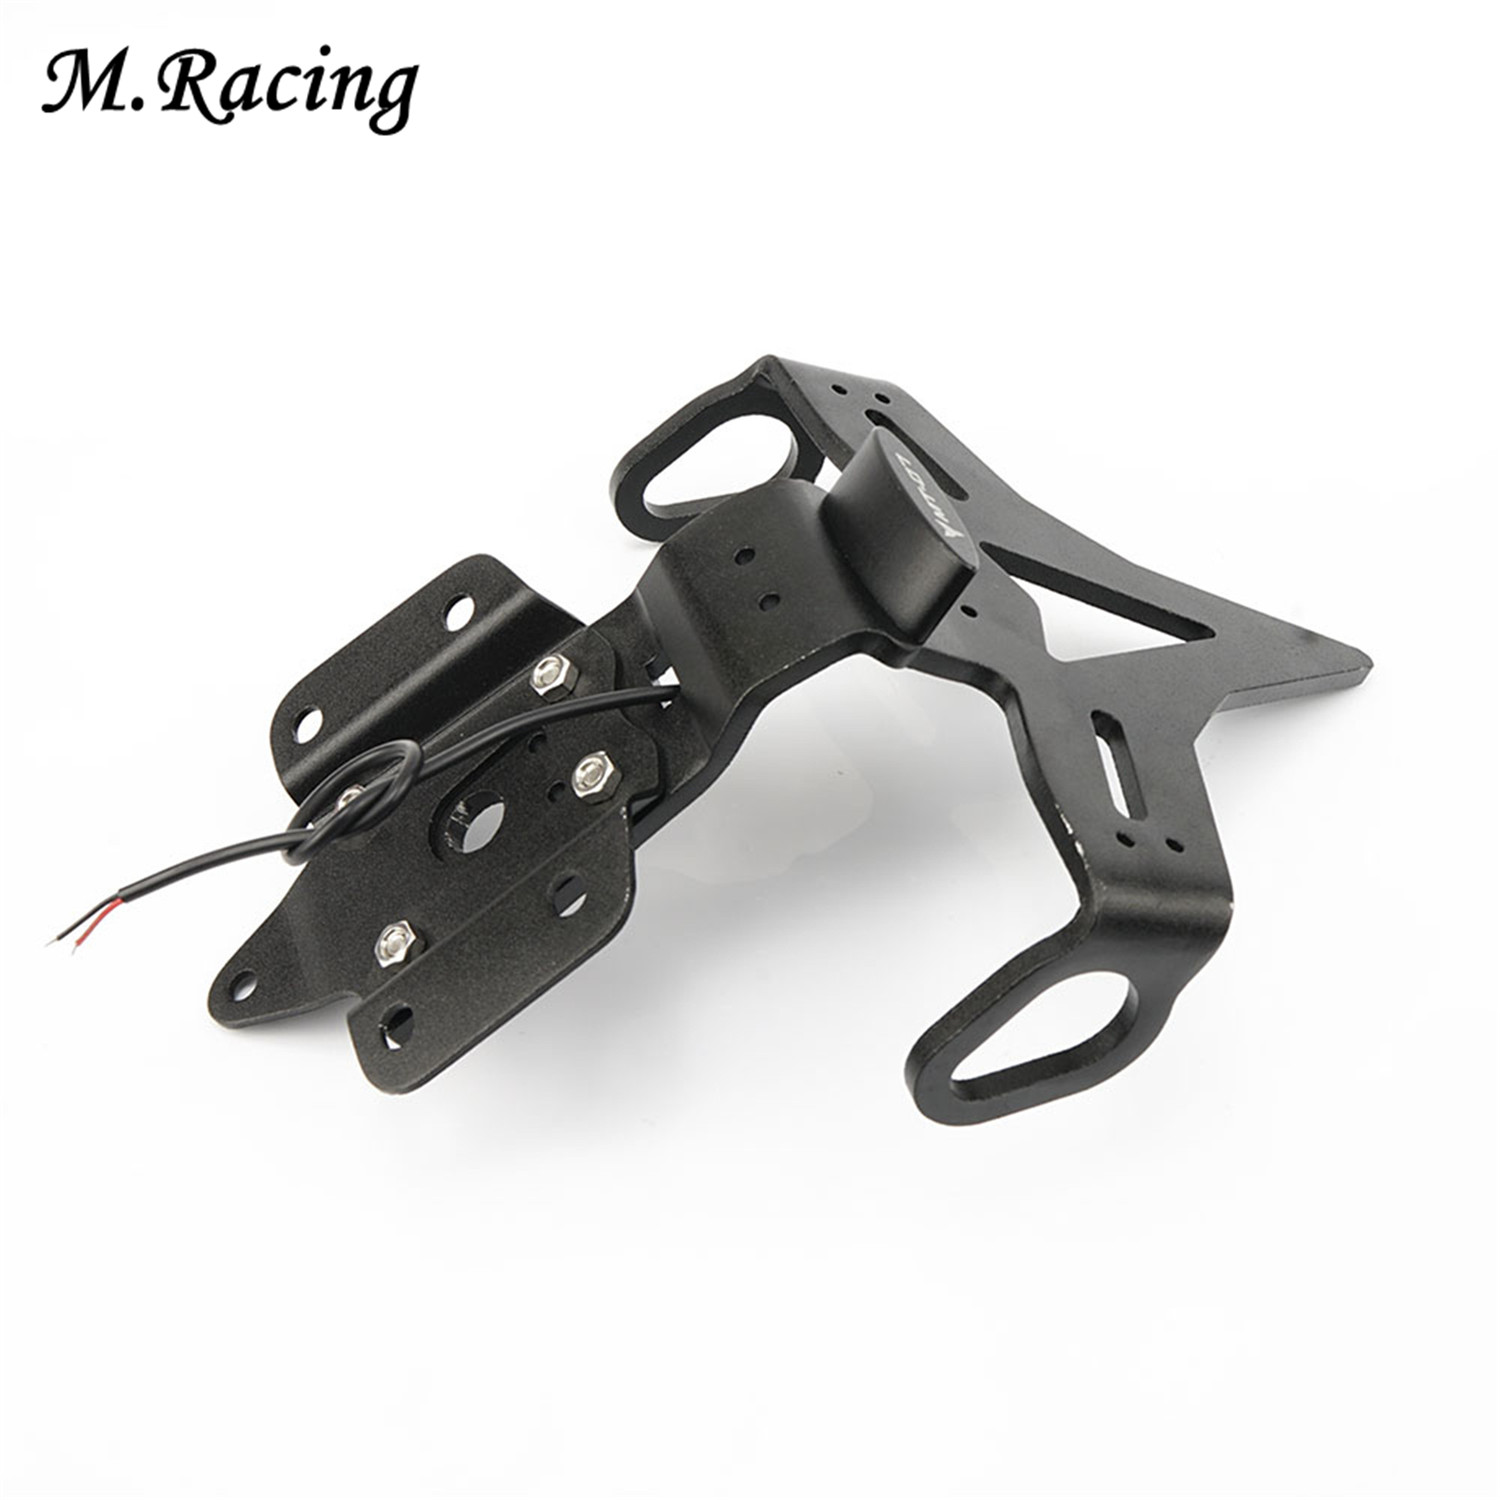 Motorcycle License Plate Holder License Bracket Tail Tidy For Yamaha MT 07 MT07 FZ 07 FZ07 2013 2015 in Covers Ornamental Mouldings from Automobiles Motorcycles